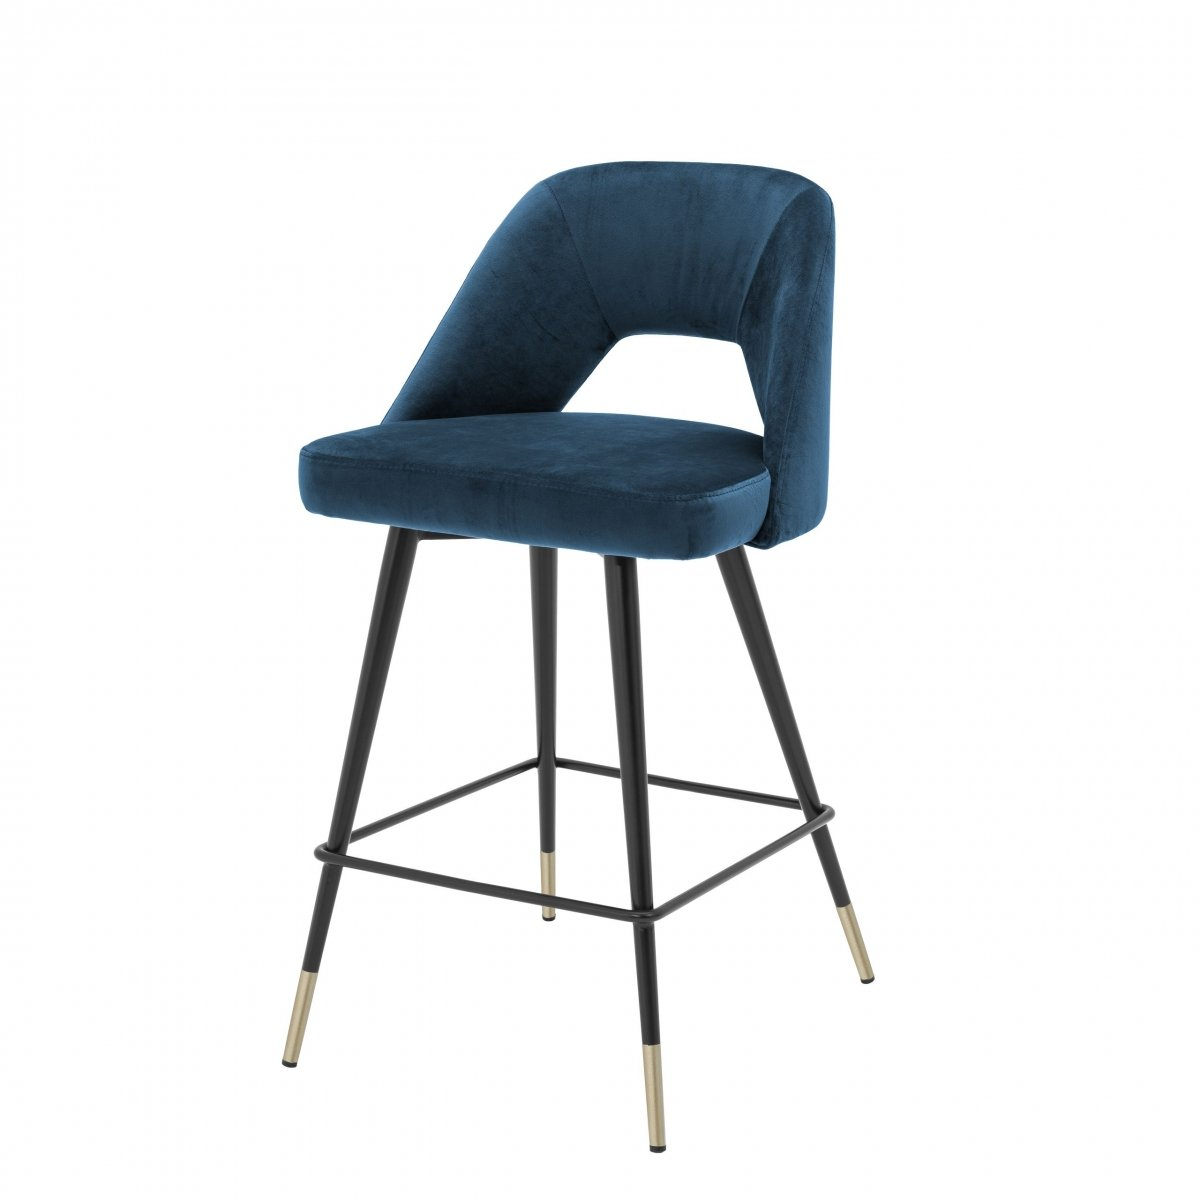 Полубарный стул Eichholtz Counter Bar Stool Avorio Blue